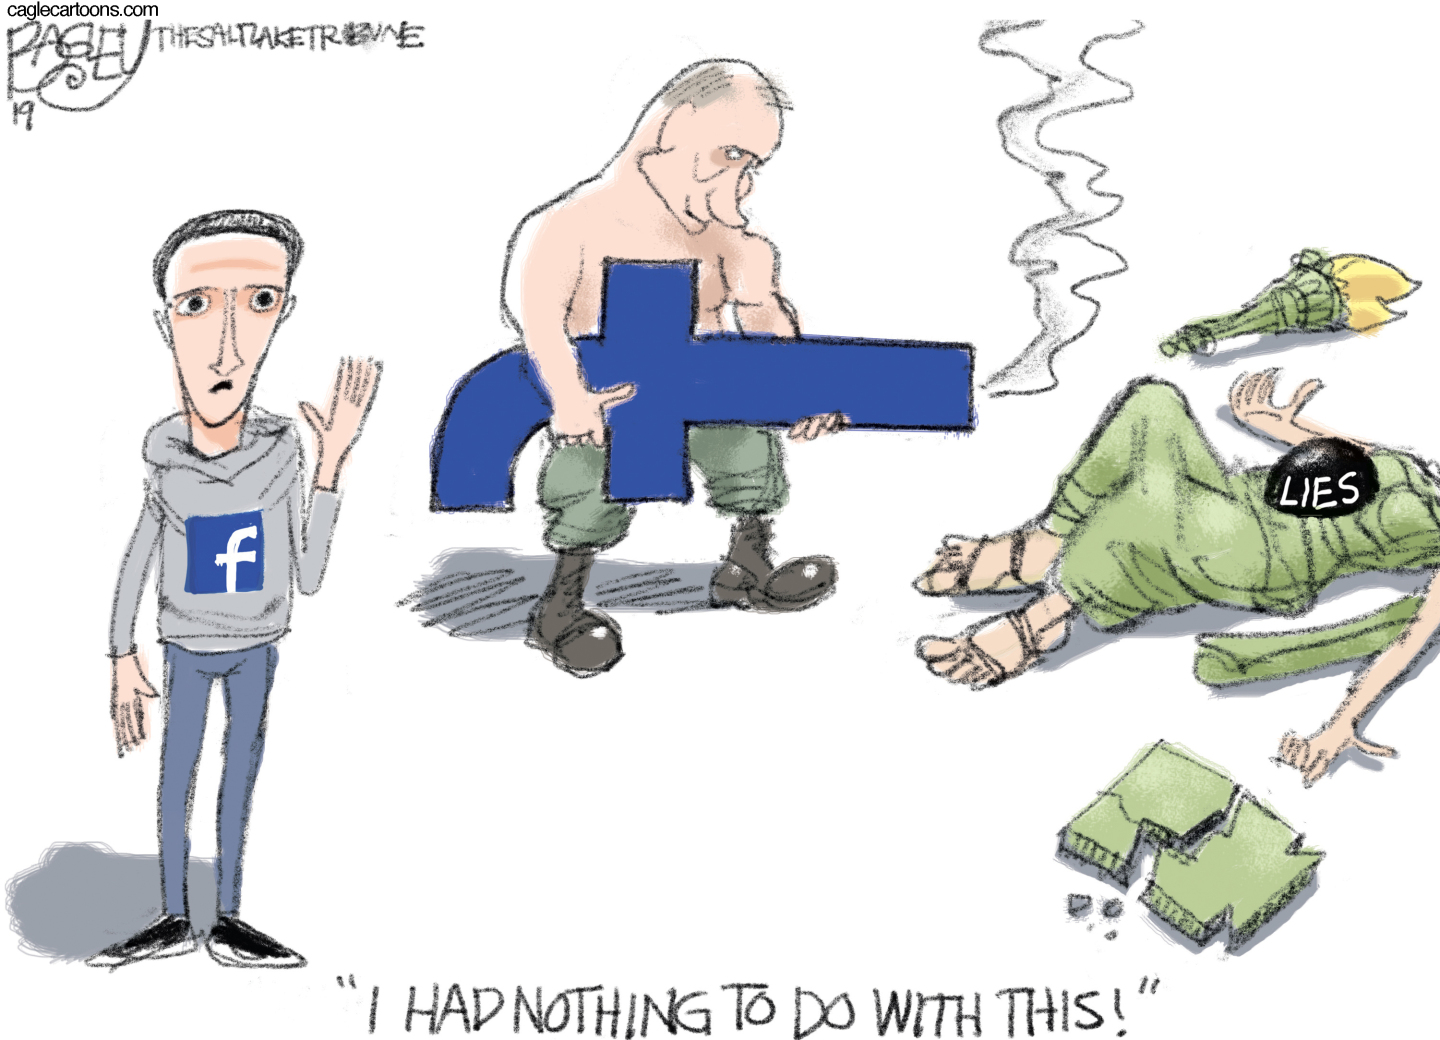 Facebook profits from spreading disinformation